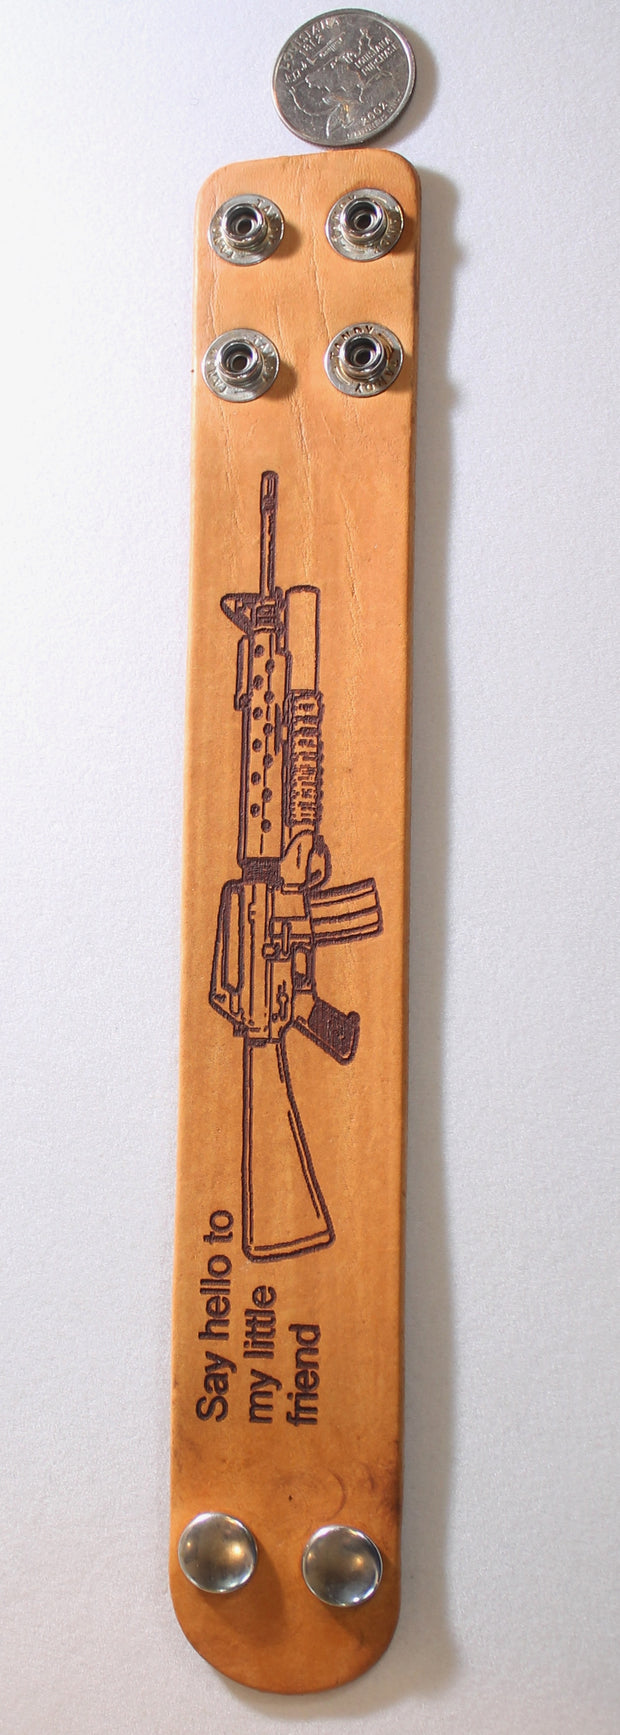 AR15, M16, M4, assault rifle, military laser engraved stained leather bracelet adjustable - Samstagsandmore